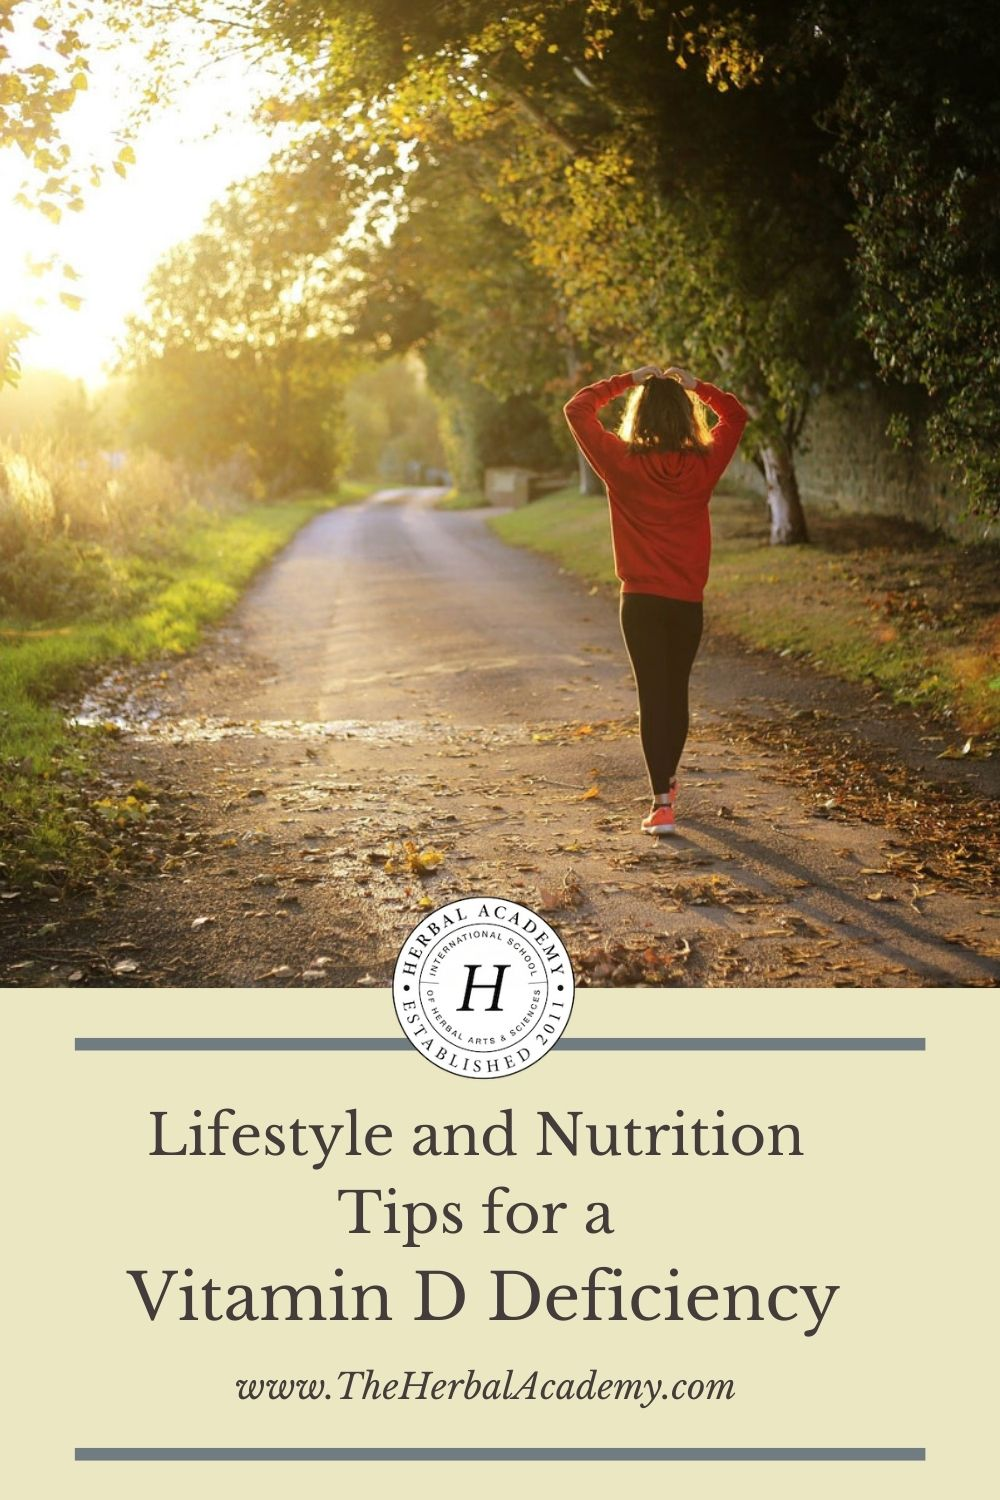 Lifestyle and Nutrition Tips for a Vitamin D Deficiency | Herbal Academy | A vitamin D deficiency is surprisingly common; learn about the best ways to obtain the desired levels of this crucial hormone.